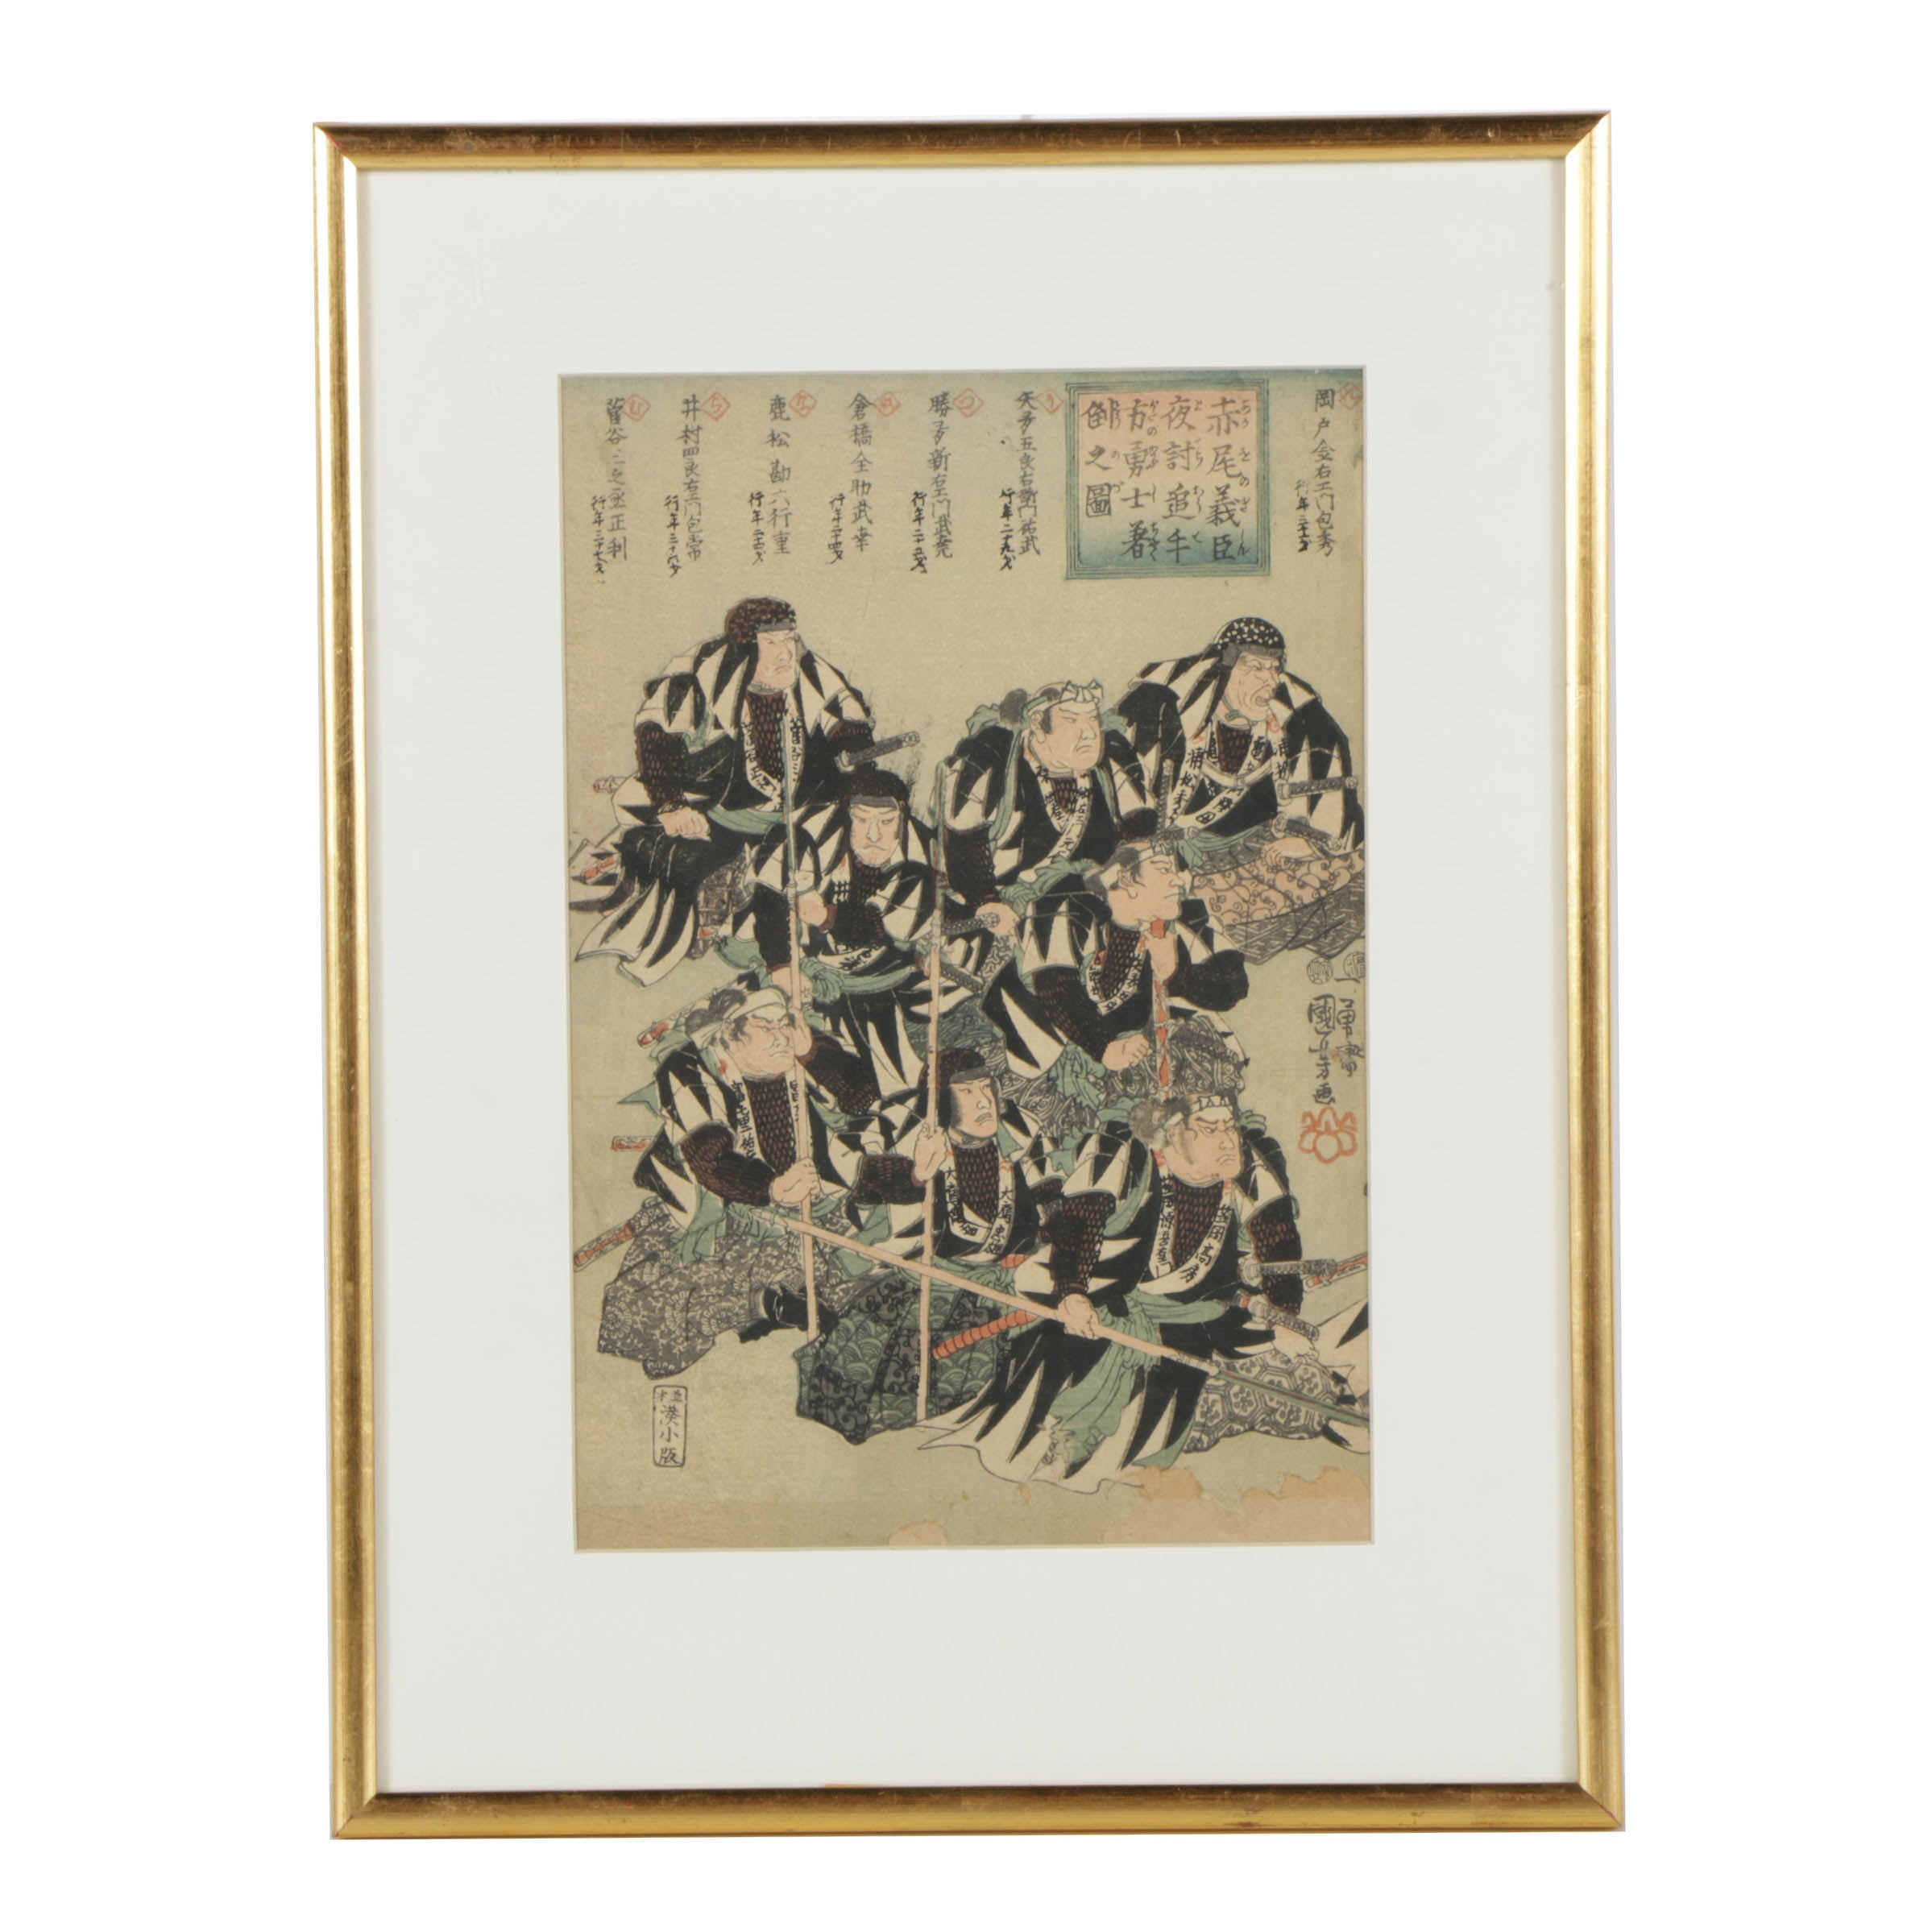 the 47 ronin story essay The story of the 47 ronin  how does music affect us essayist how music affects human beings psychology essay print, to music can affect,.